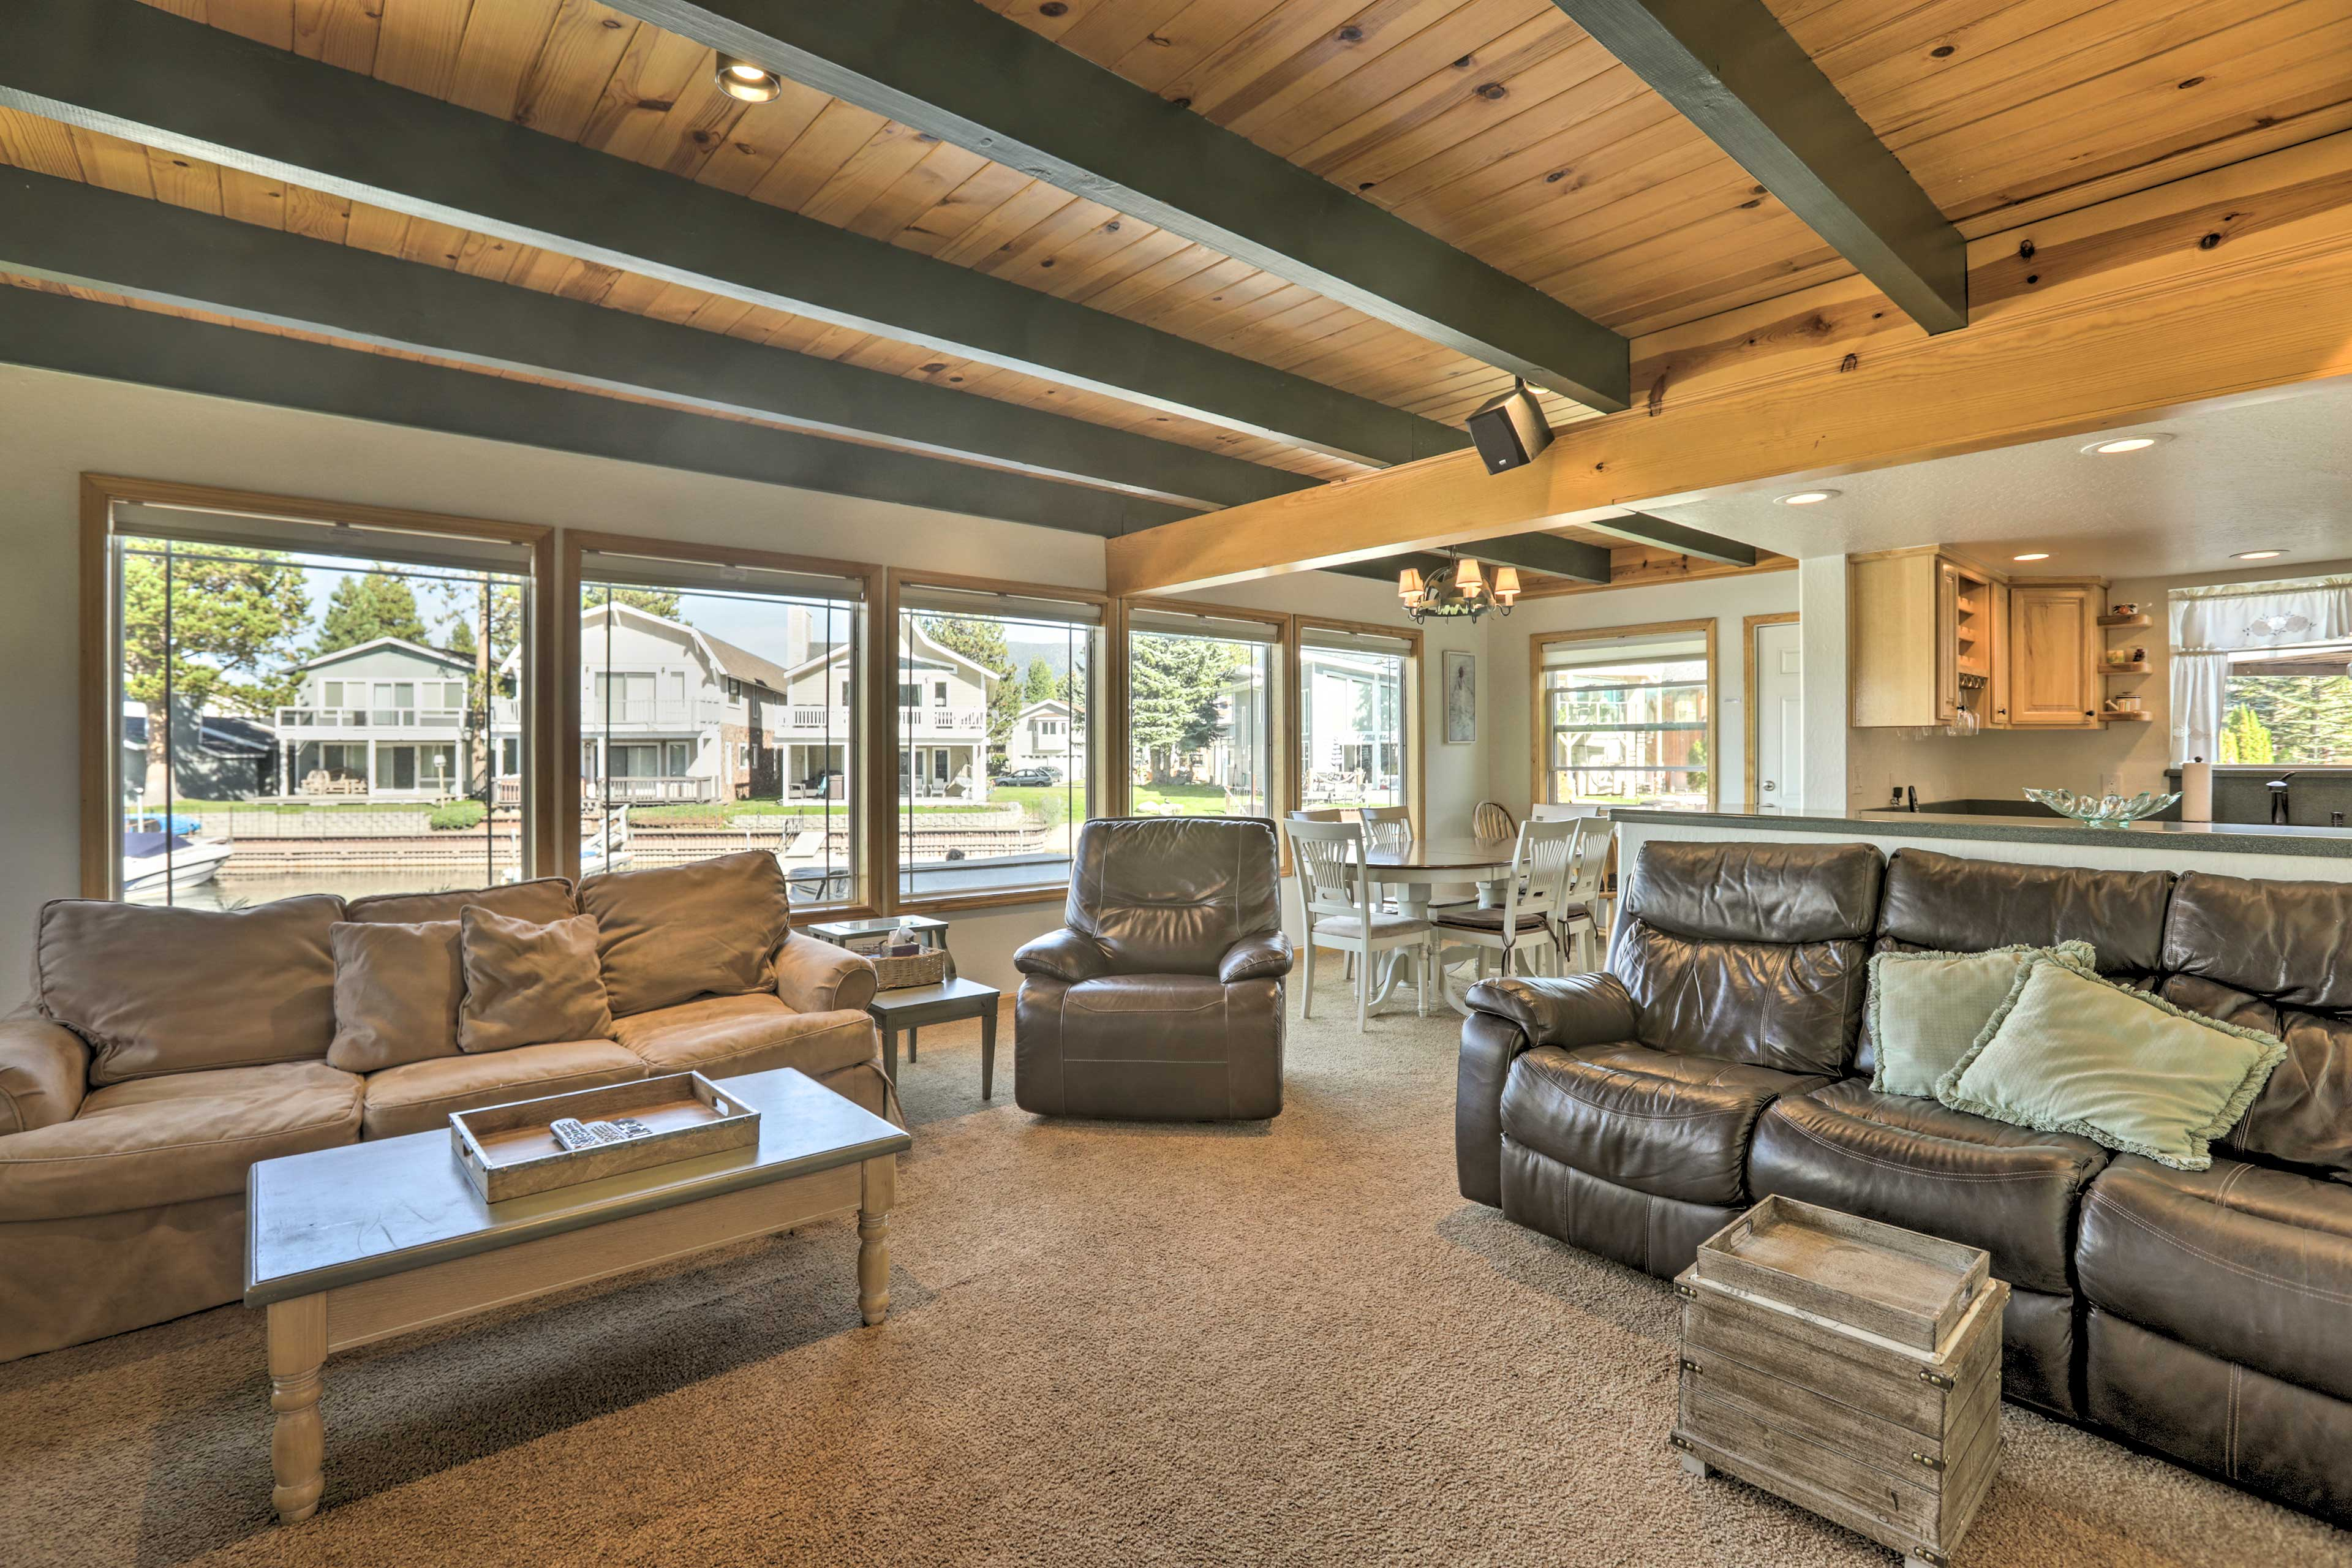 Natural light pours into this main living space through huge windows!